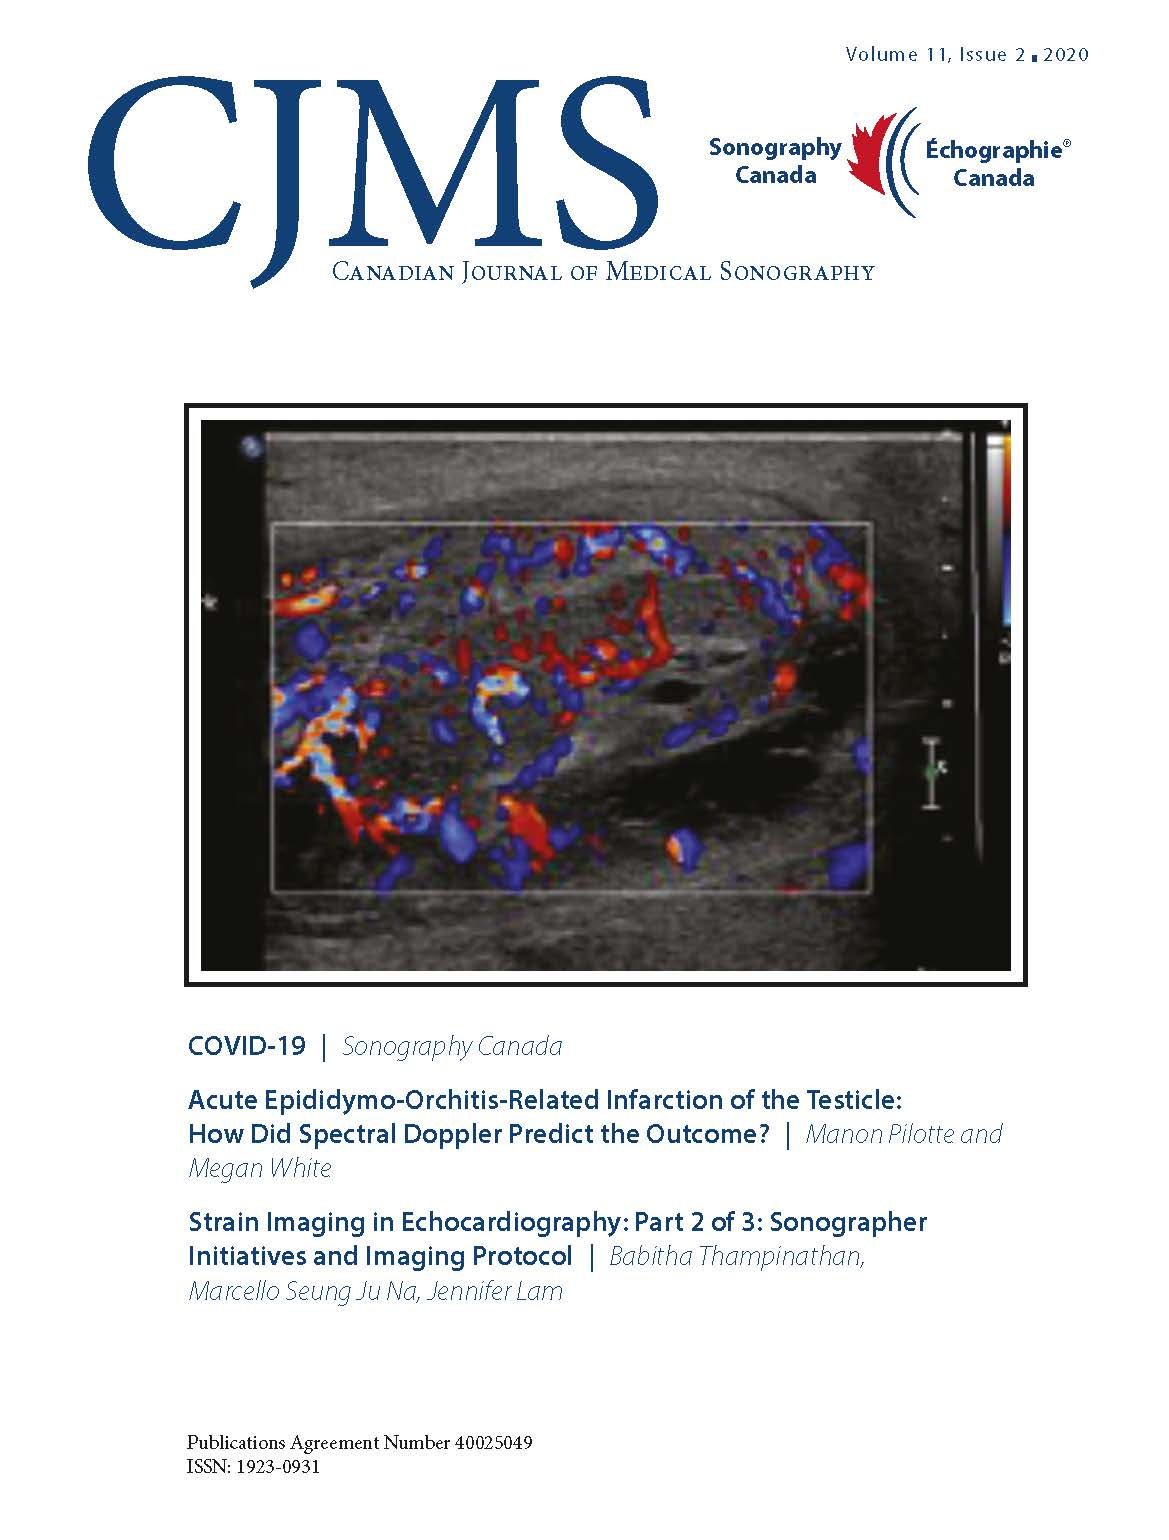 CJMS Volume 11, Issue 2 front page